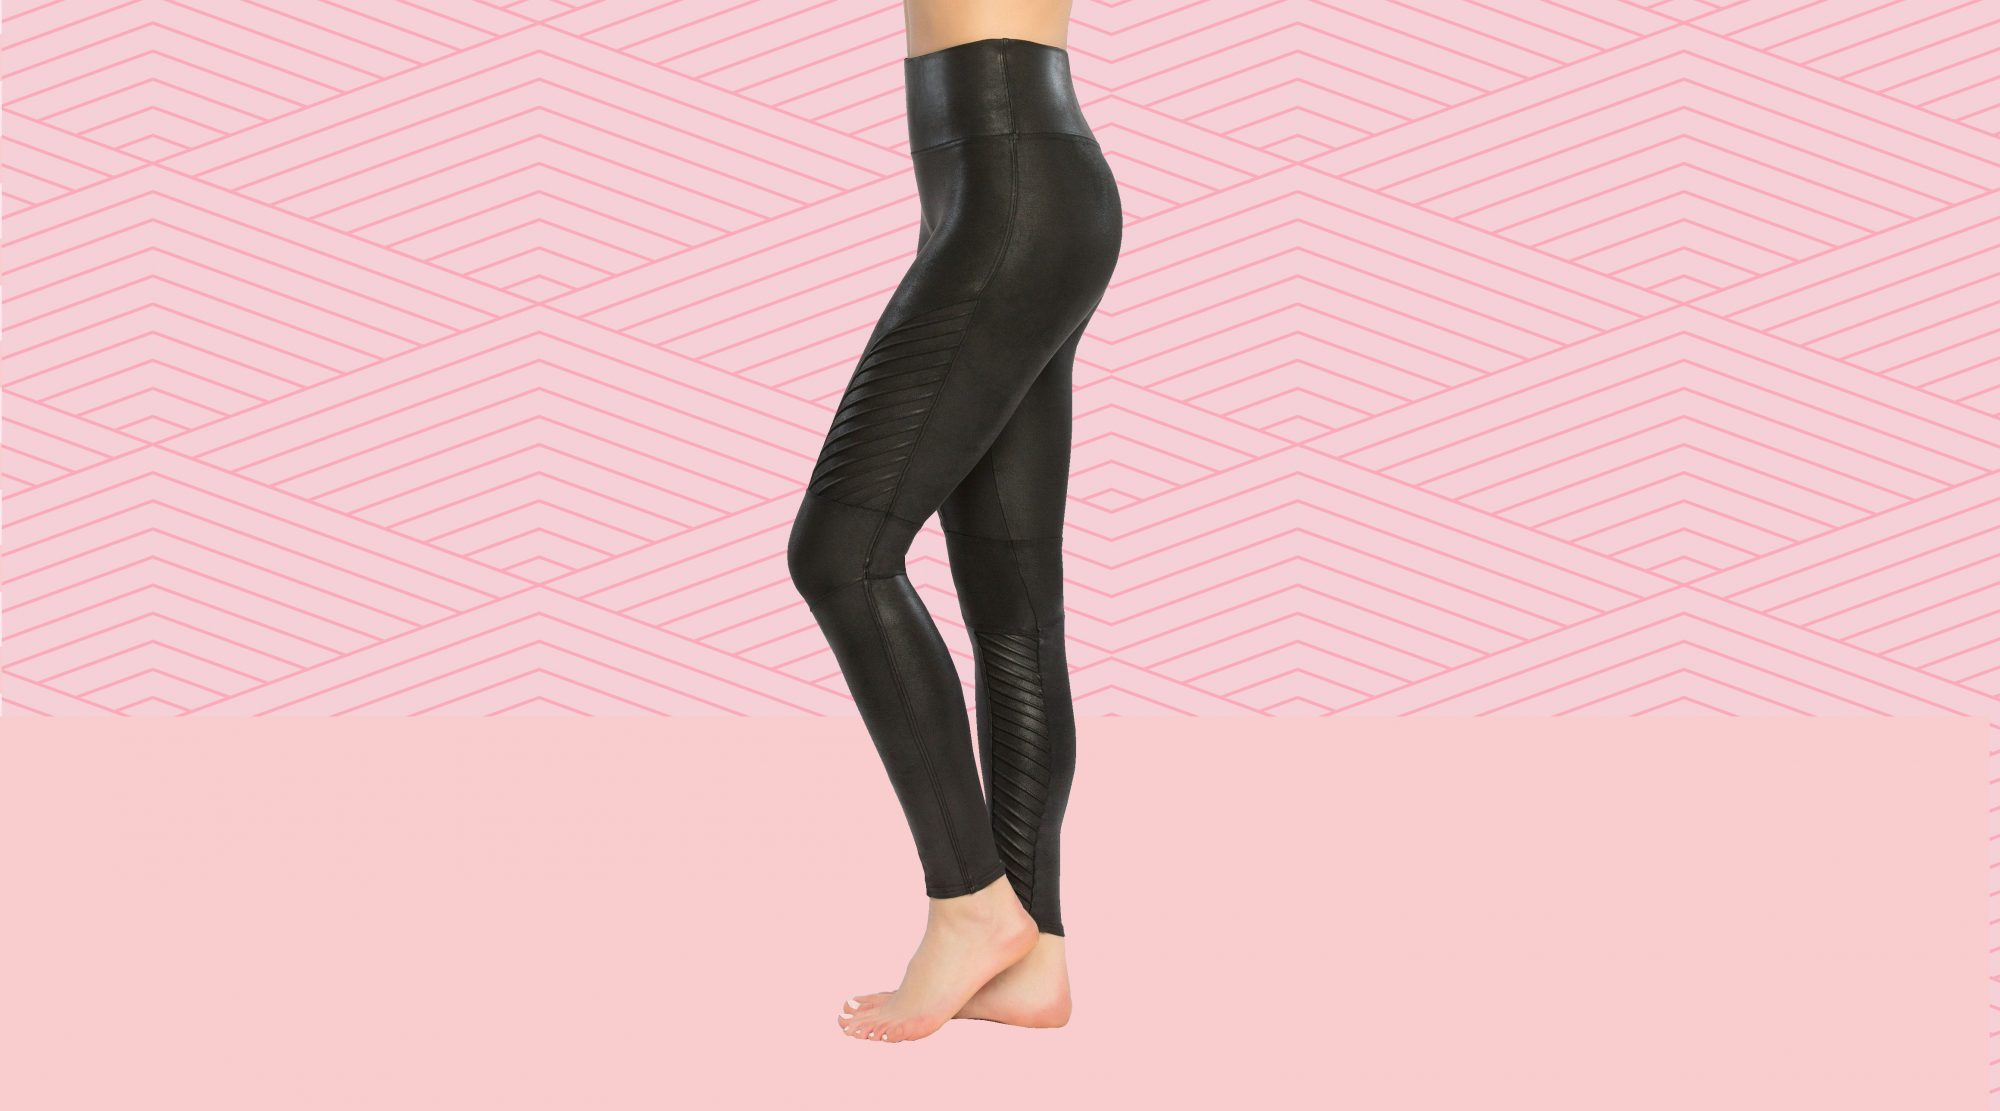 4fb65ade629f1 These SPANX Moto Leggings Are So Comfy, They're All I Wear | Real Simple